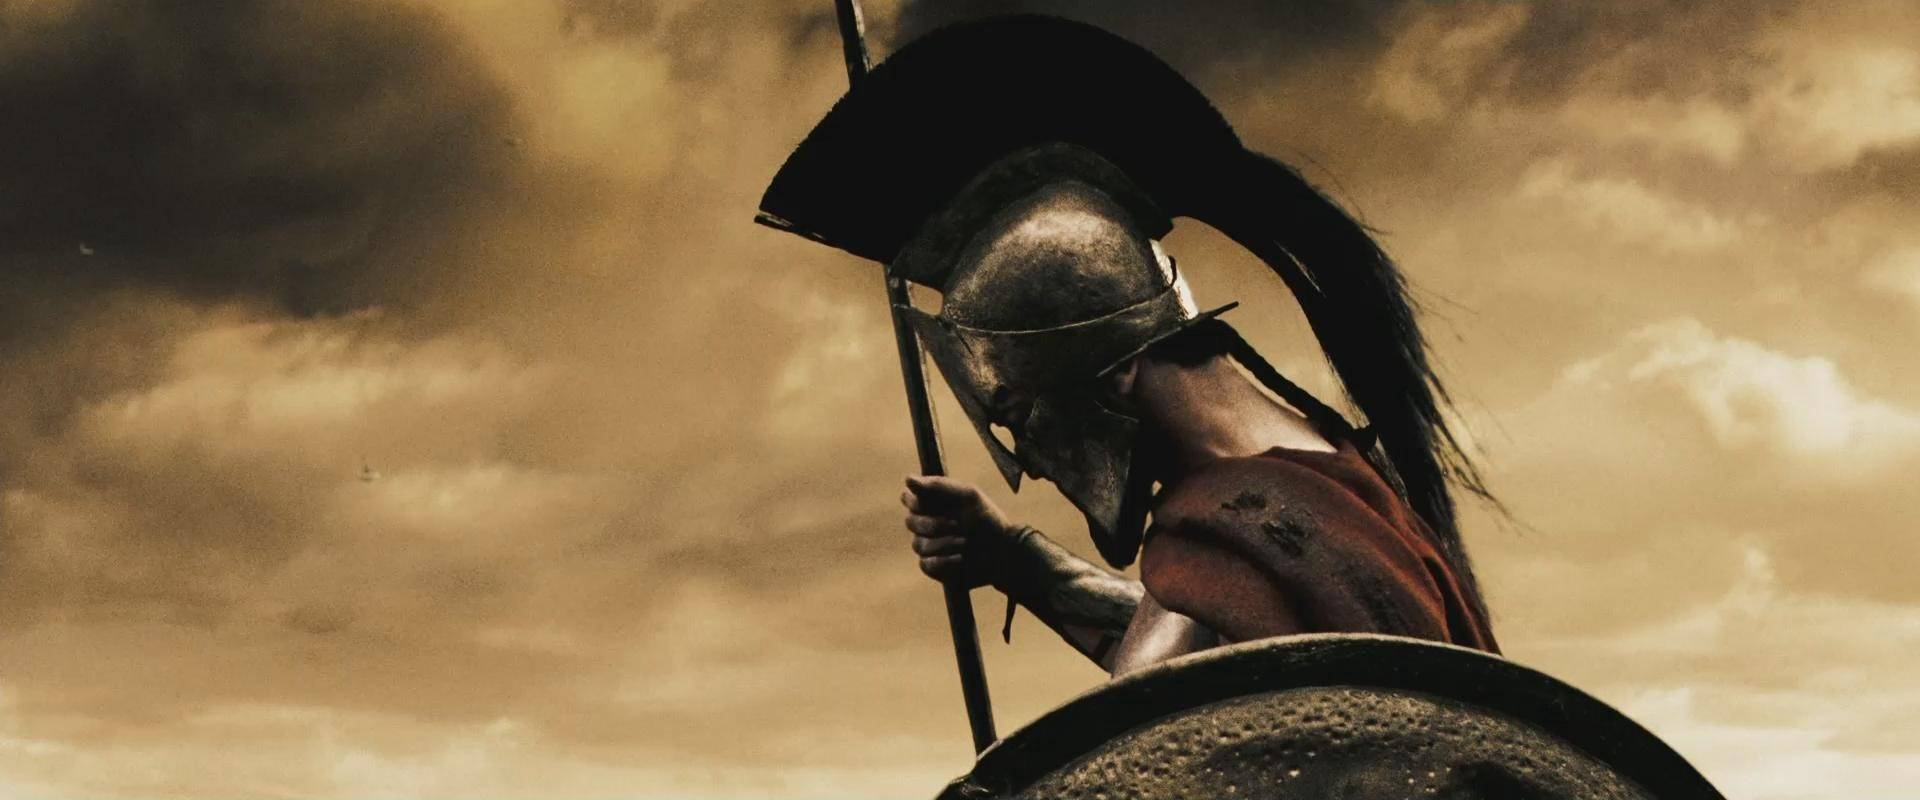 300 spartans wallpaper wallpapers - photo #35